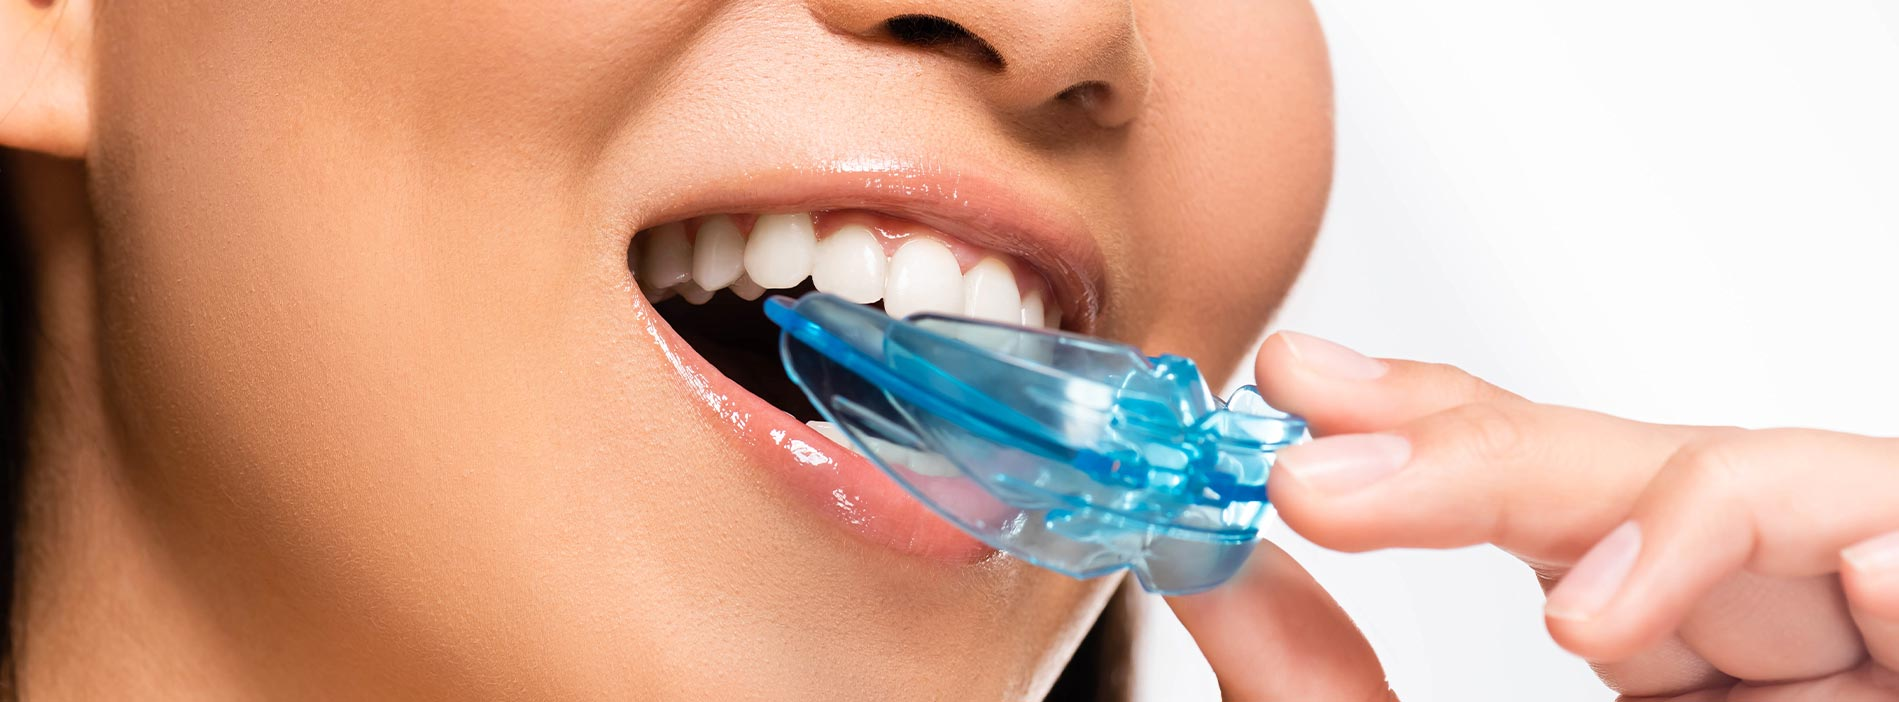 Woman is removing her mouth guard